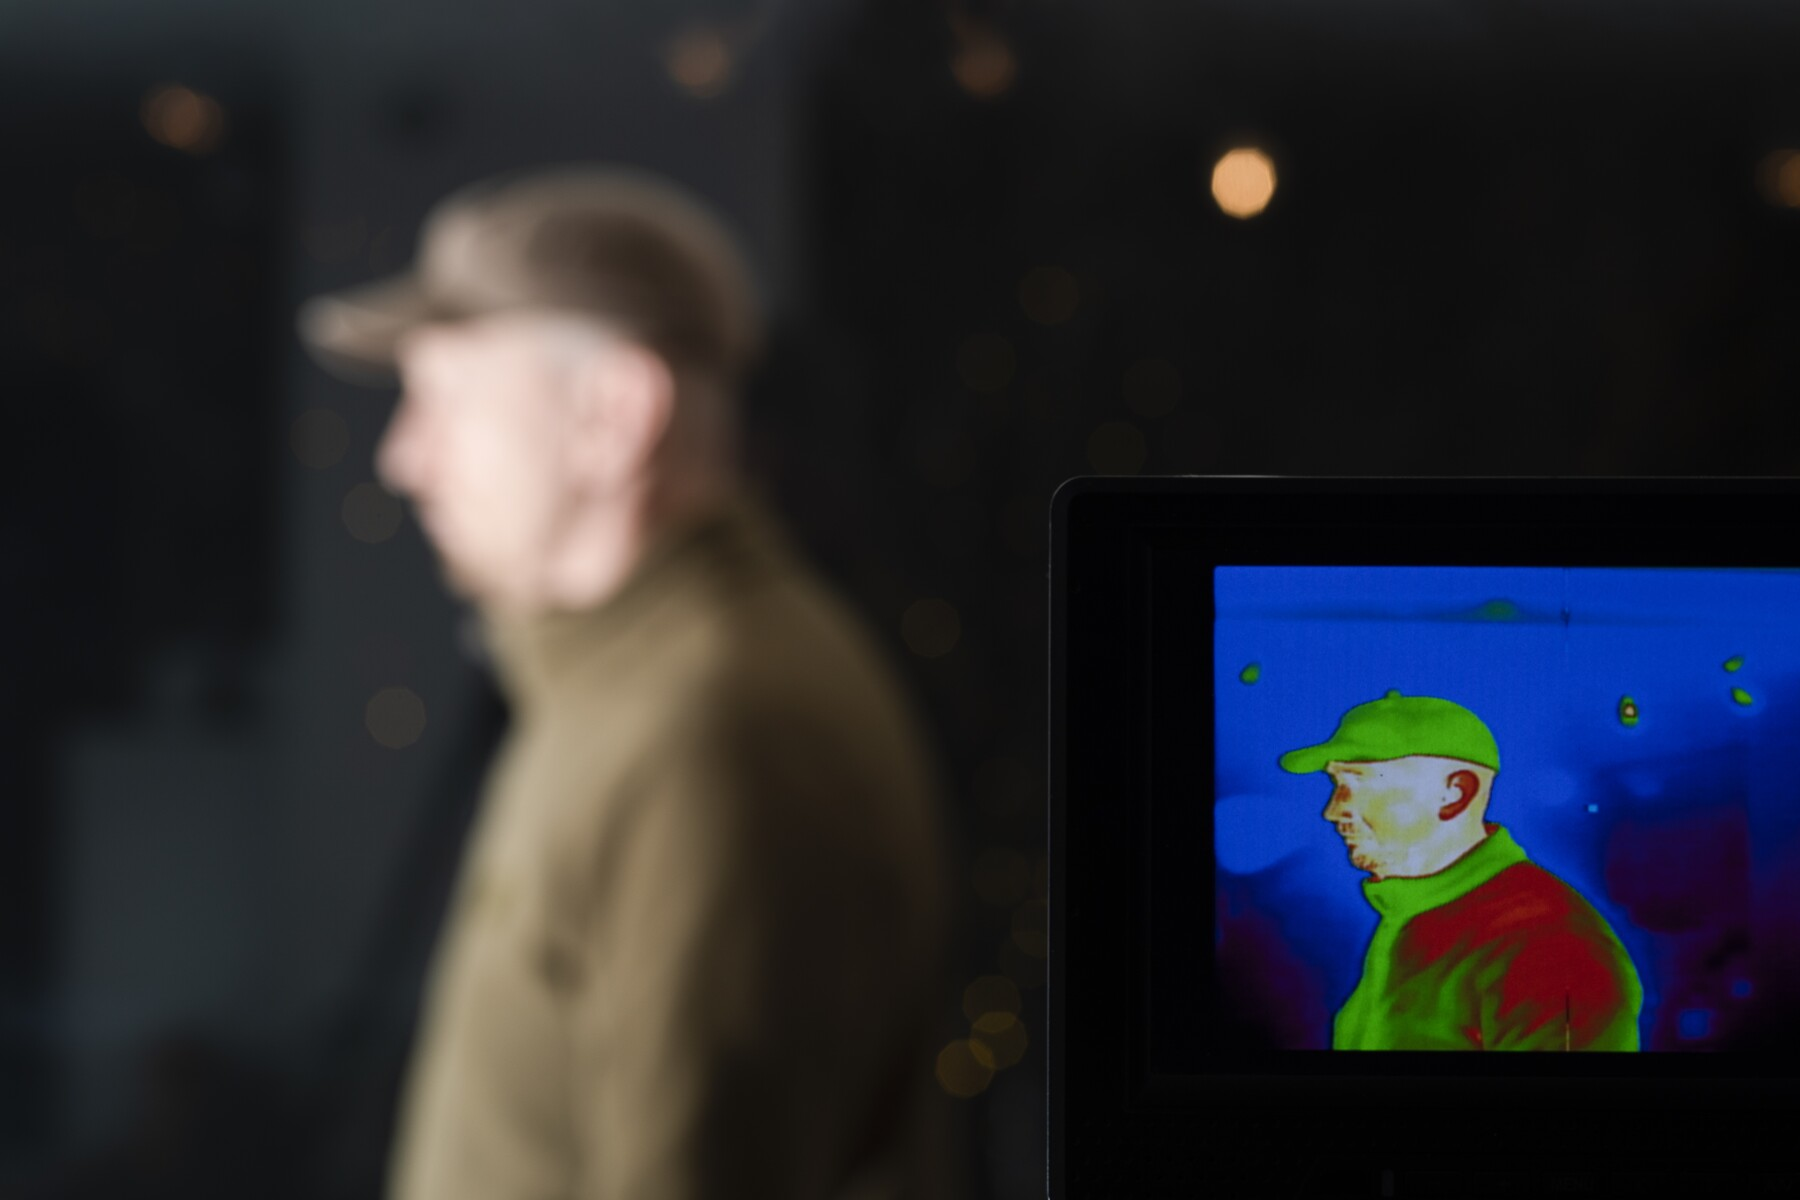 Thermal scanning of a person